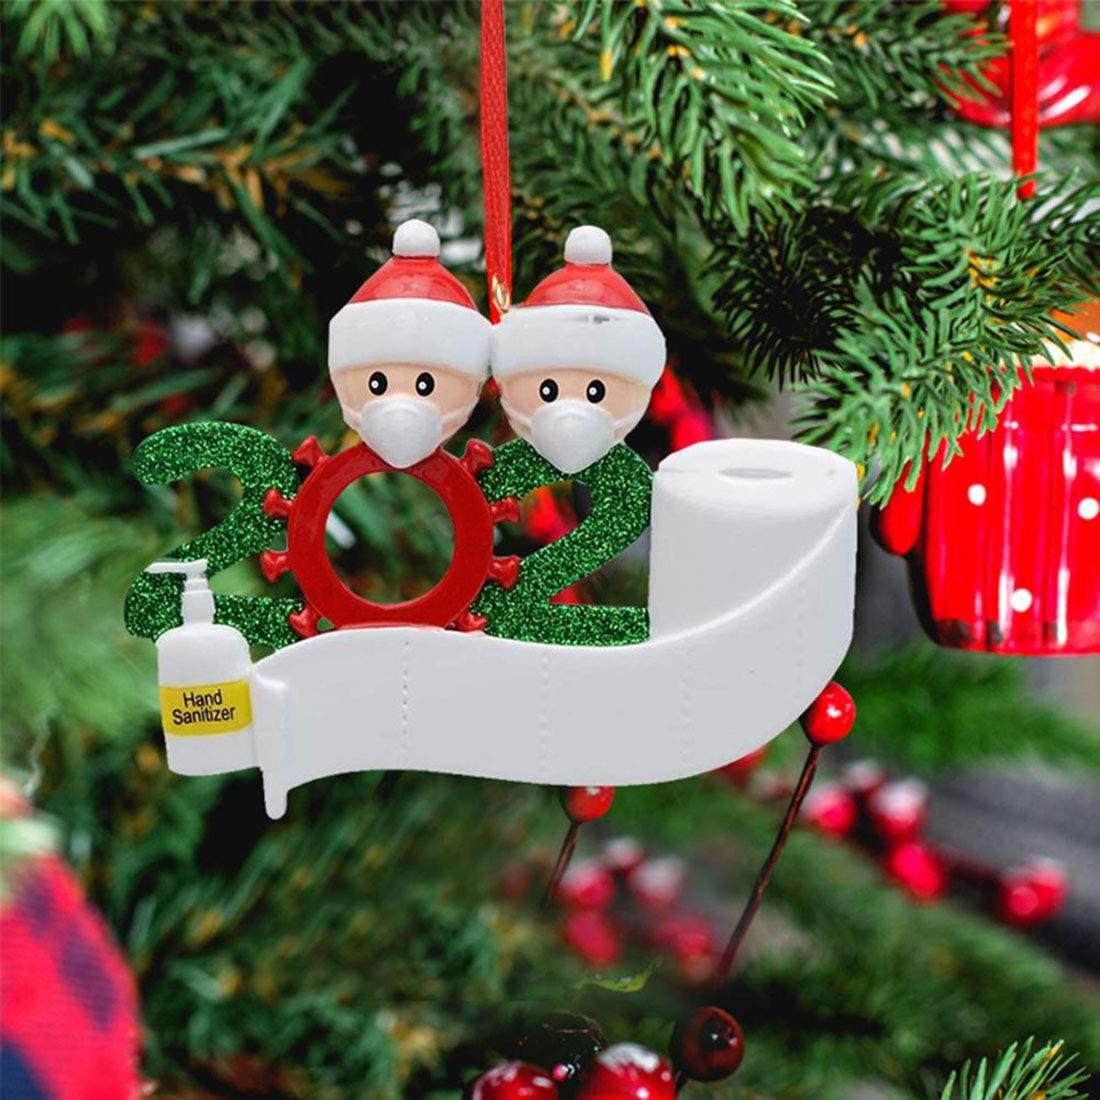 Special 2021 Holiday Christmas Ornaments Seasonal Decor Jyukan Personalized Christmas Ornaments Family Of 3 Customize It Yourself Family Christmas Ornament 2021 With Mask Hand Sanitized Ornaments